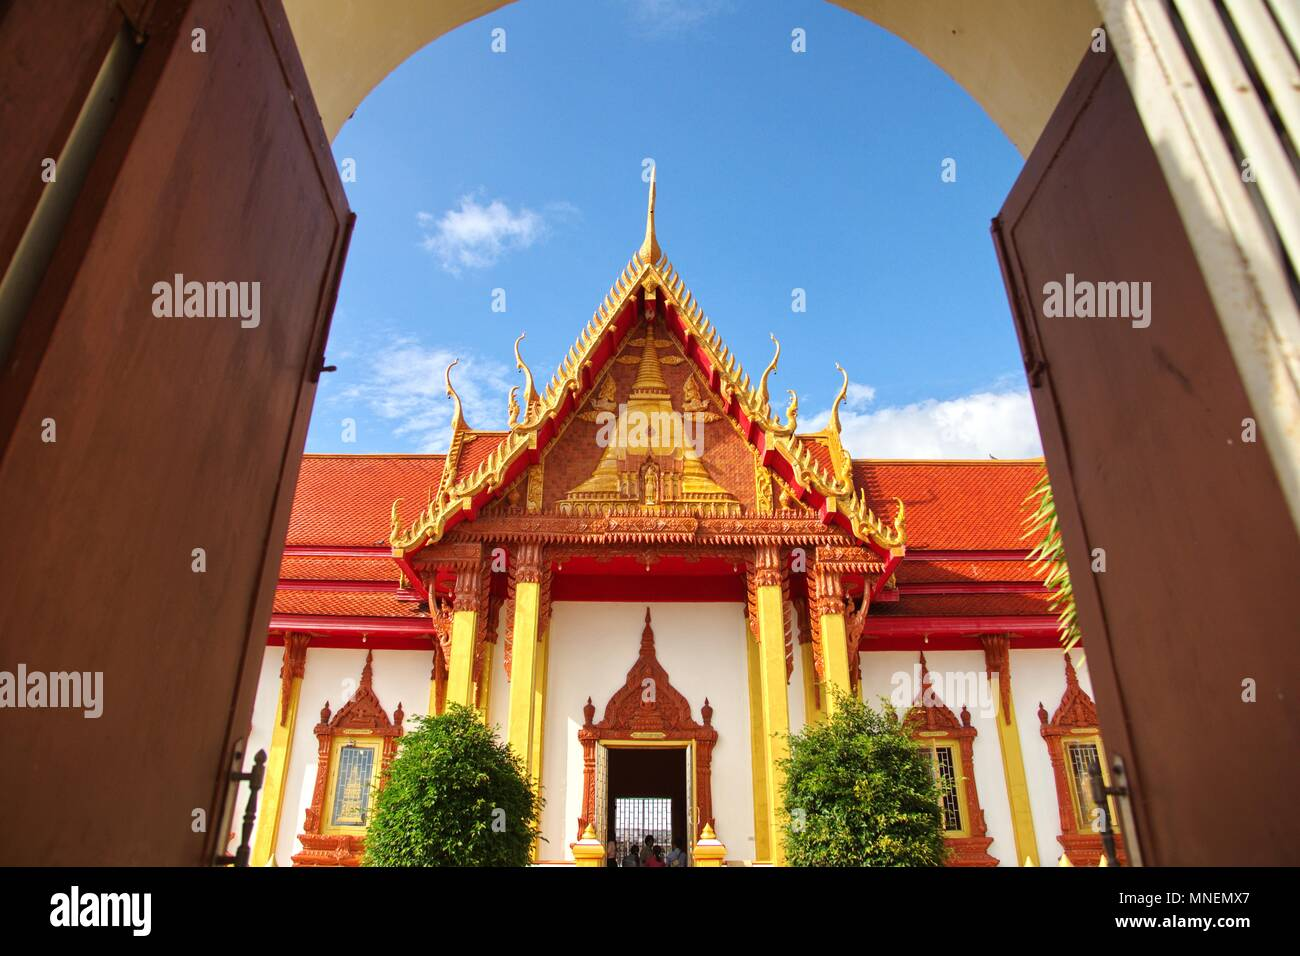 Chuech in Pratart Renu temple Nakornpanom province Thailand as place of Buddha went there in ancient - Stock Image